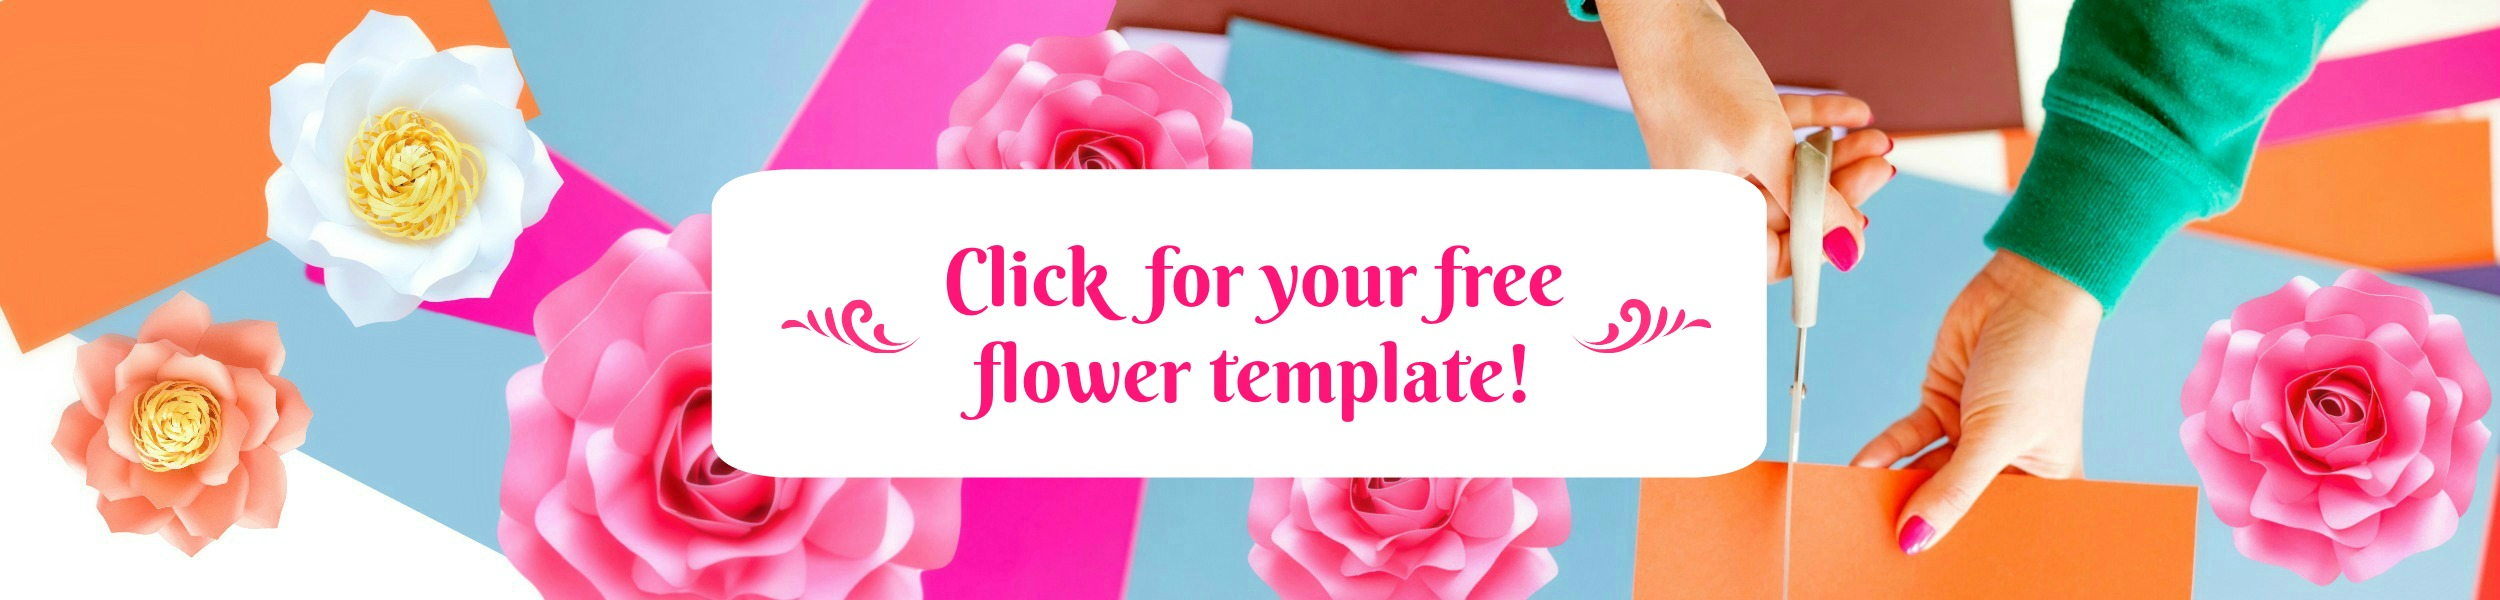 free flower templates